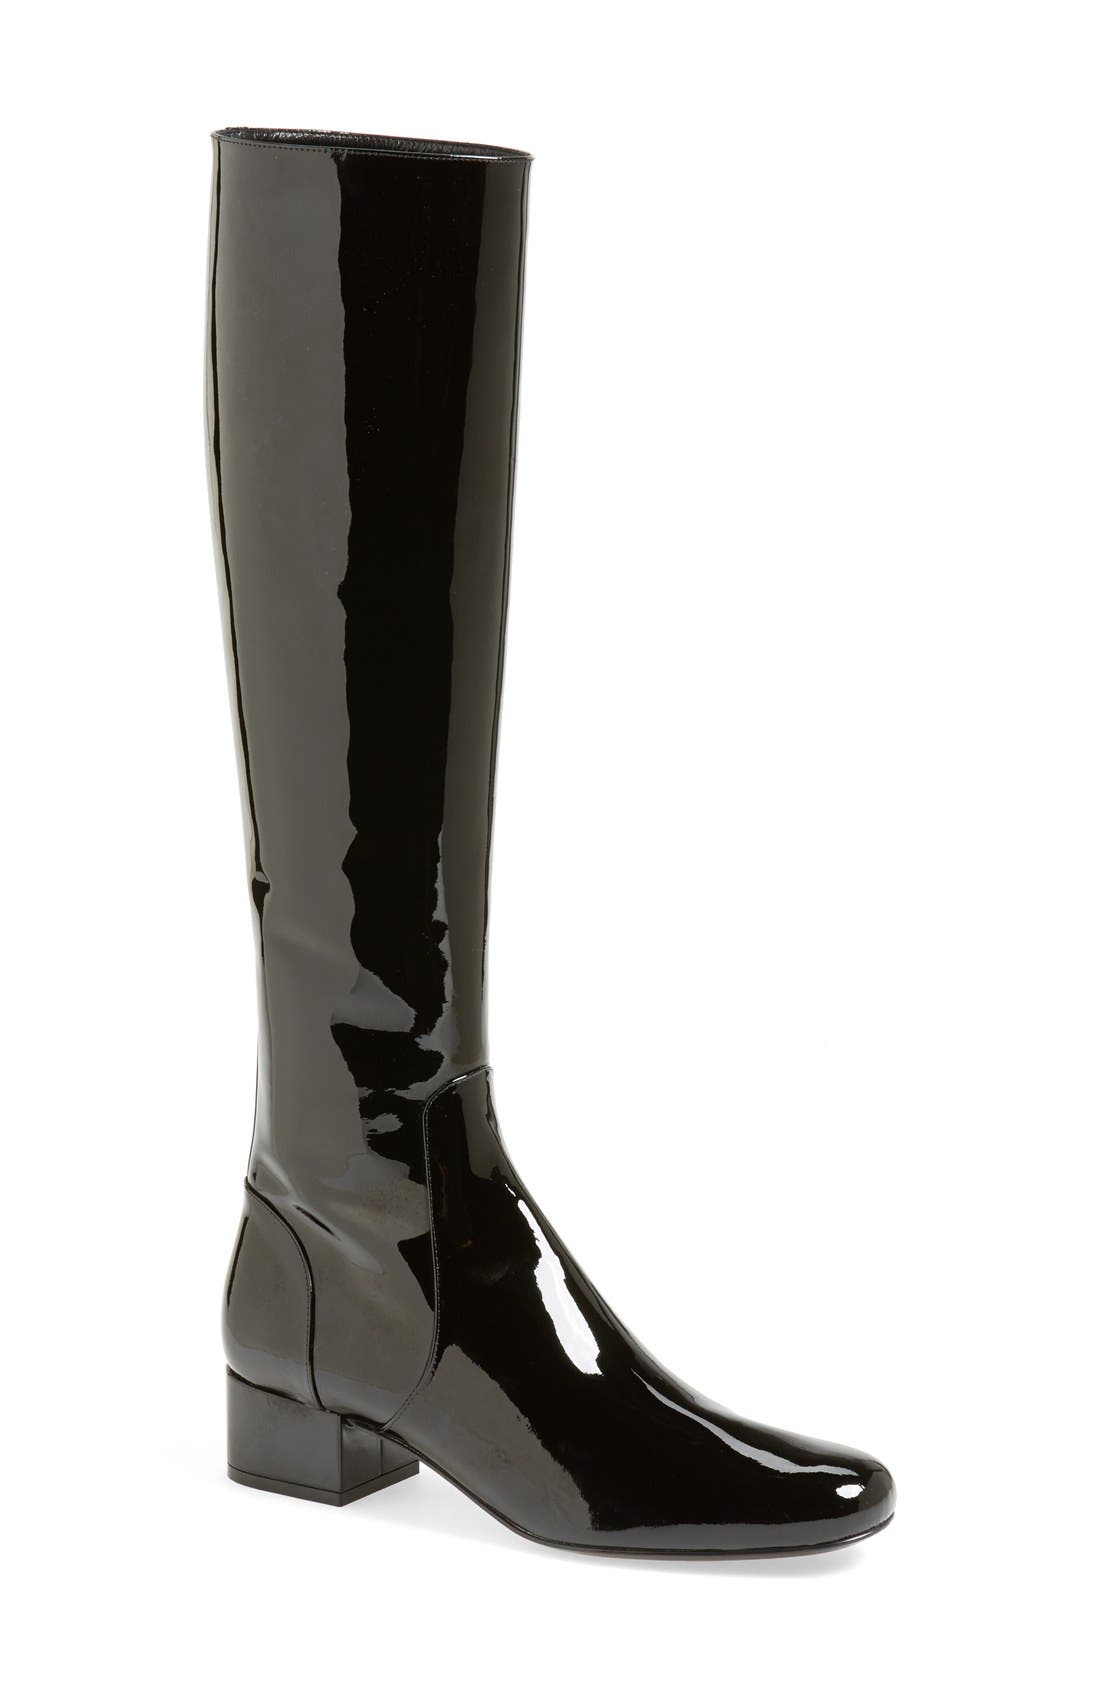 Main Image - Saint Laurent Over the Knee Patent Leather Boot (Women)